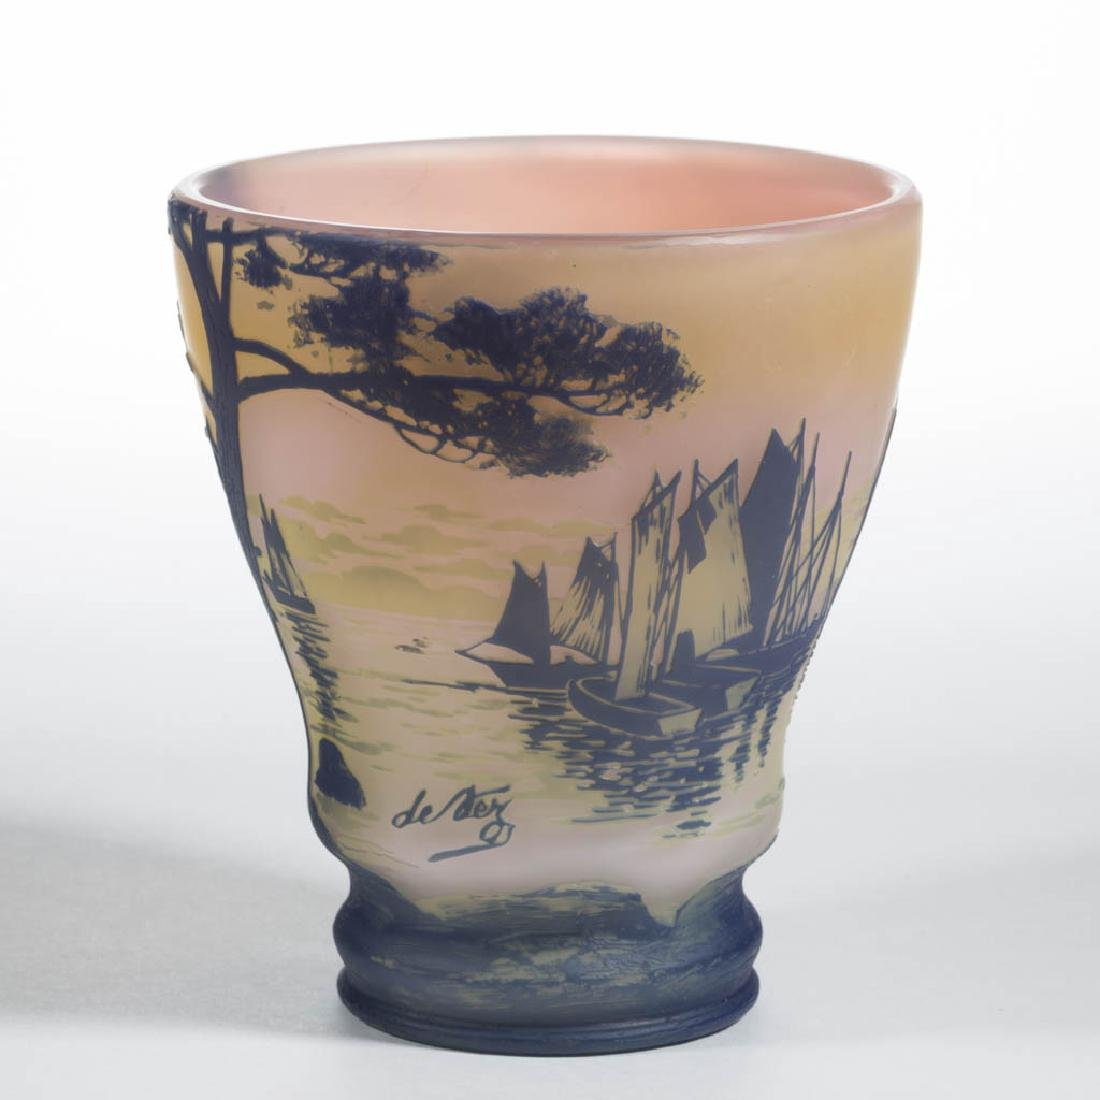 DEVEZ TRI-COLOR LANDSCAPE CAMEO ART GLASS VASE